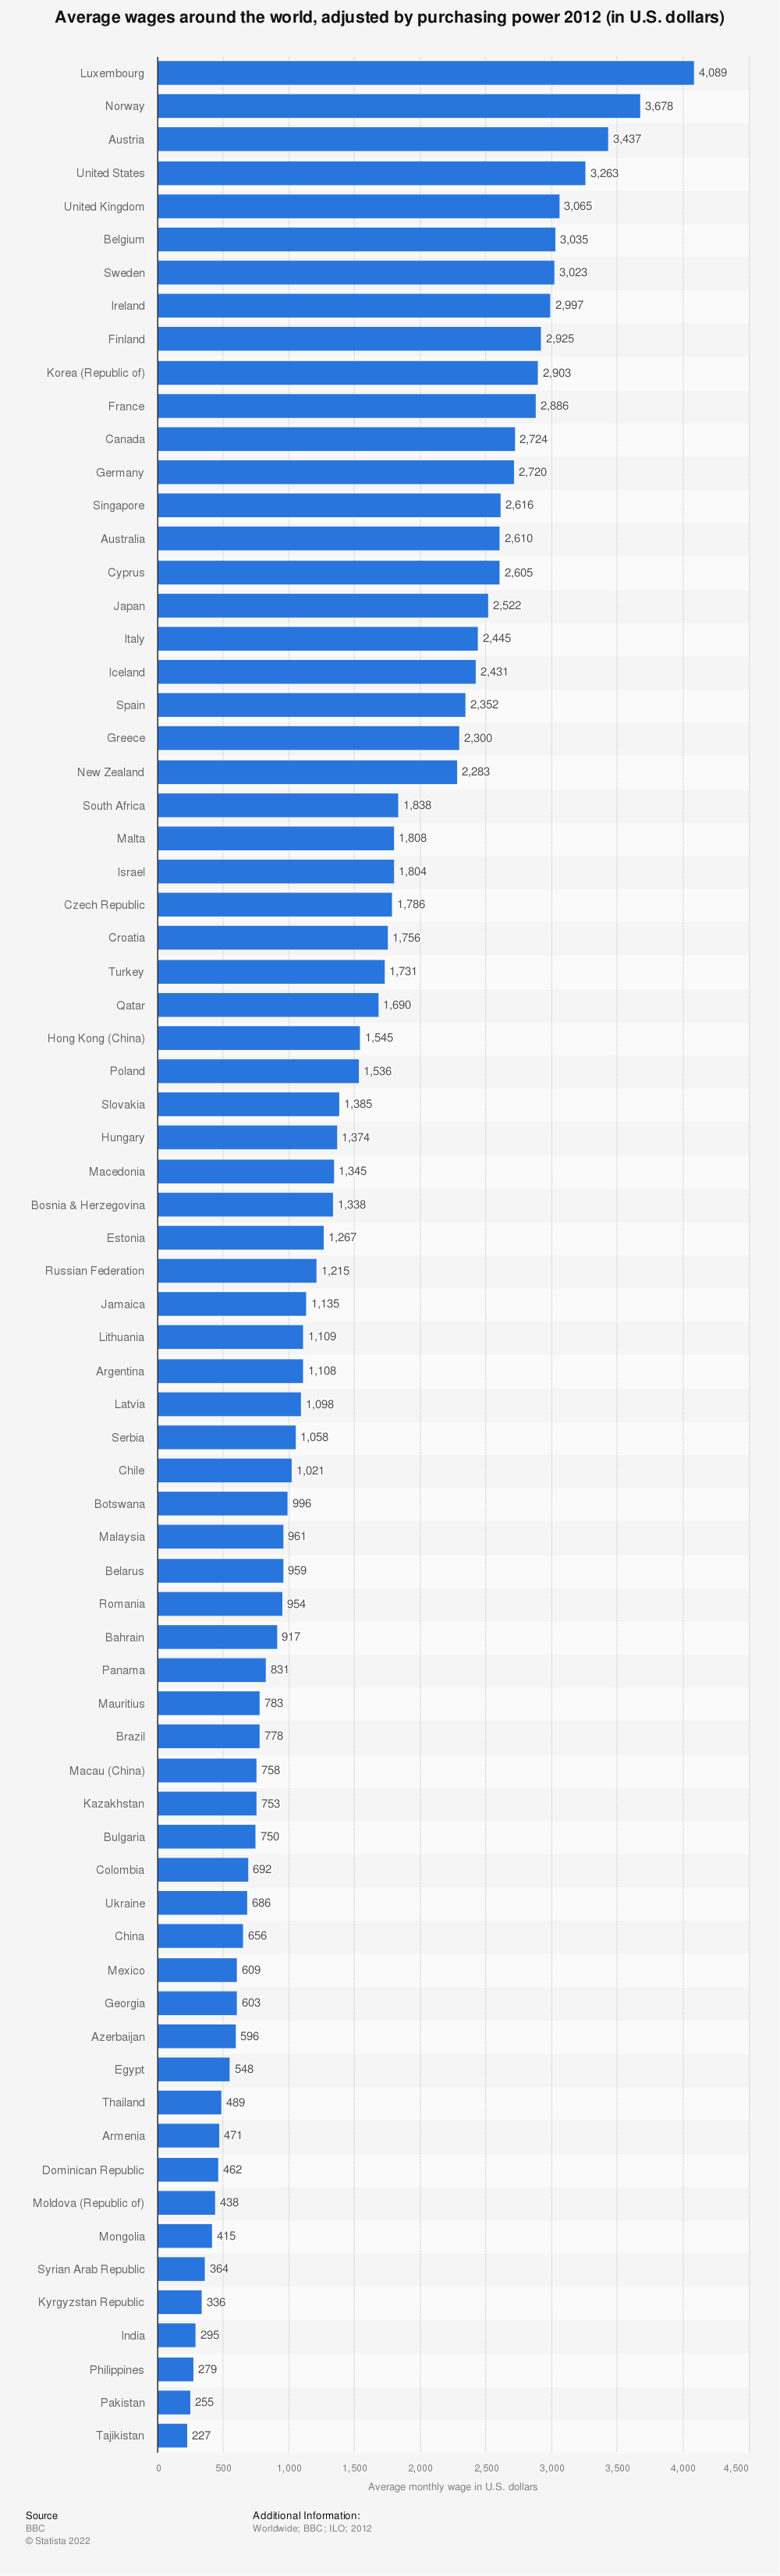 Statistic: Average salary around the world, adjusted by purchasing power 2012 (in U.S. dollars) | Statista